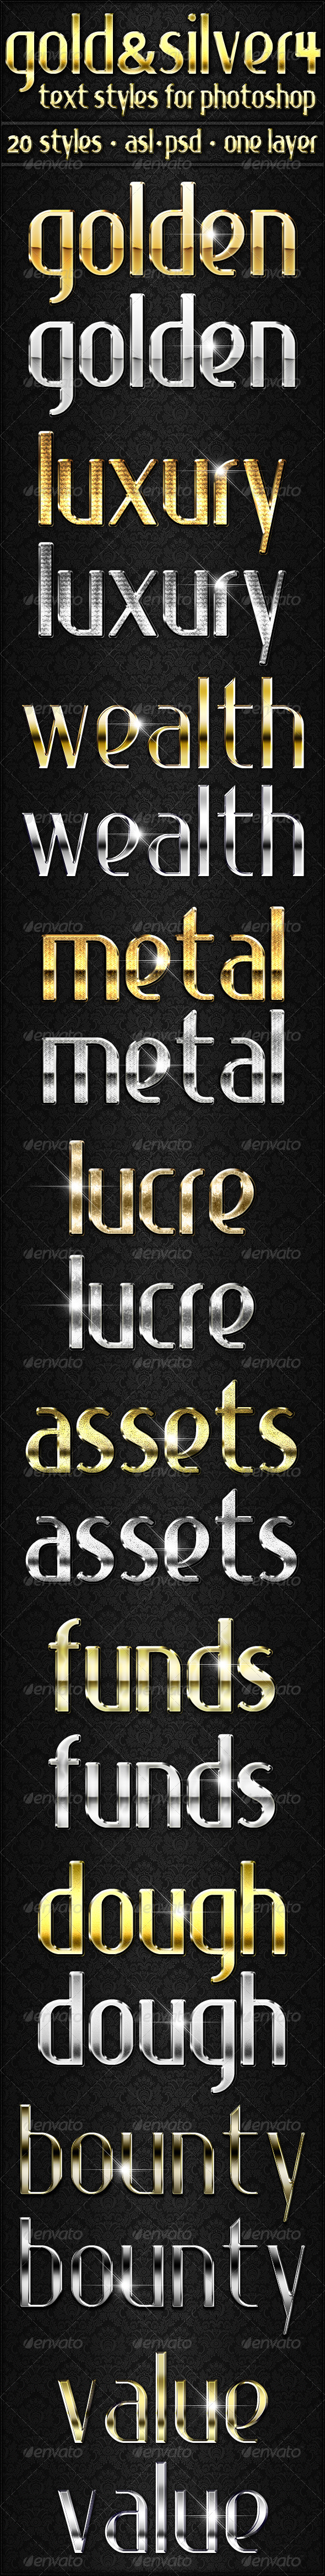 GraphicRiver Gold & Silver 4 Text Styles 5915667